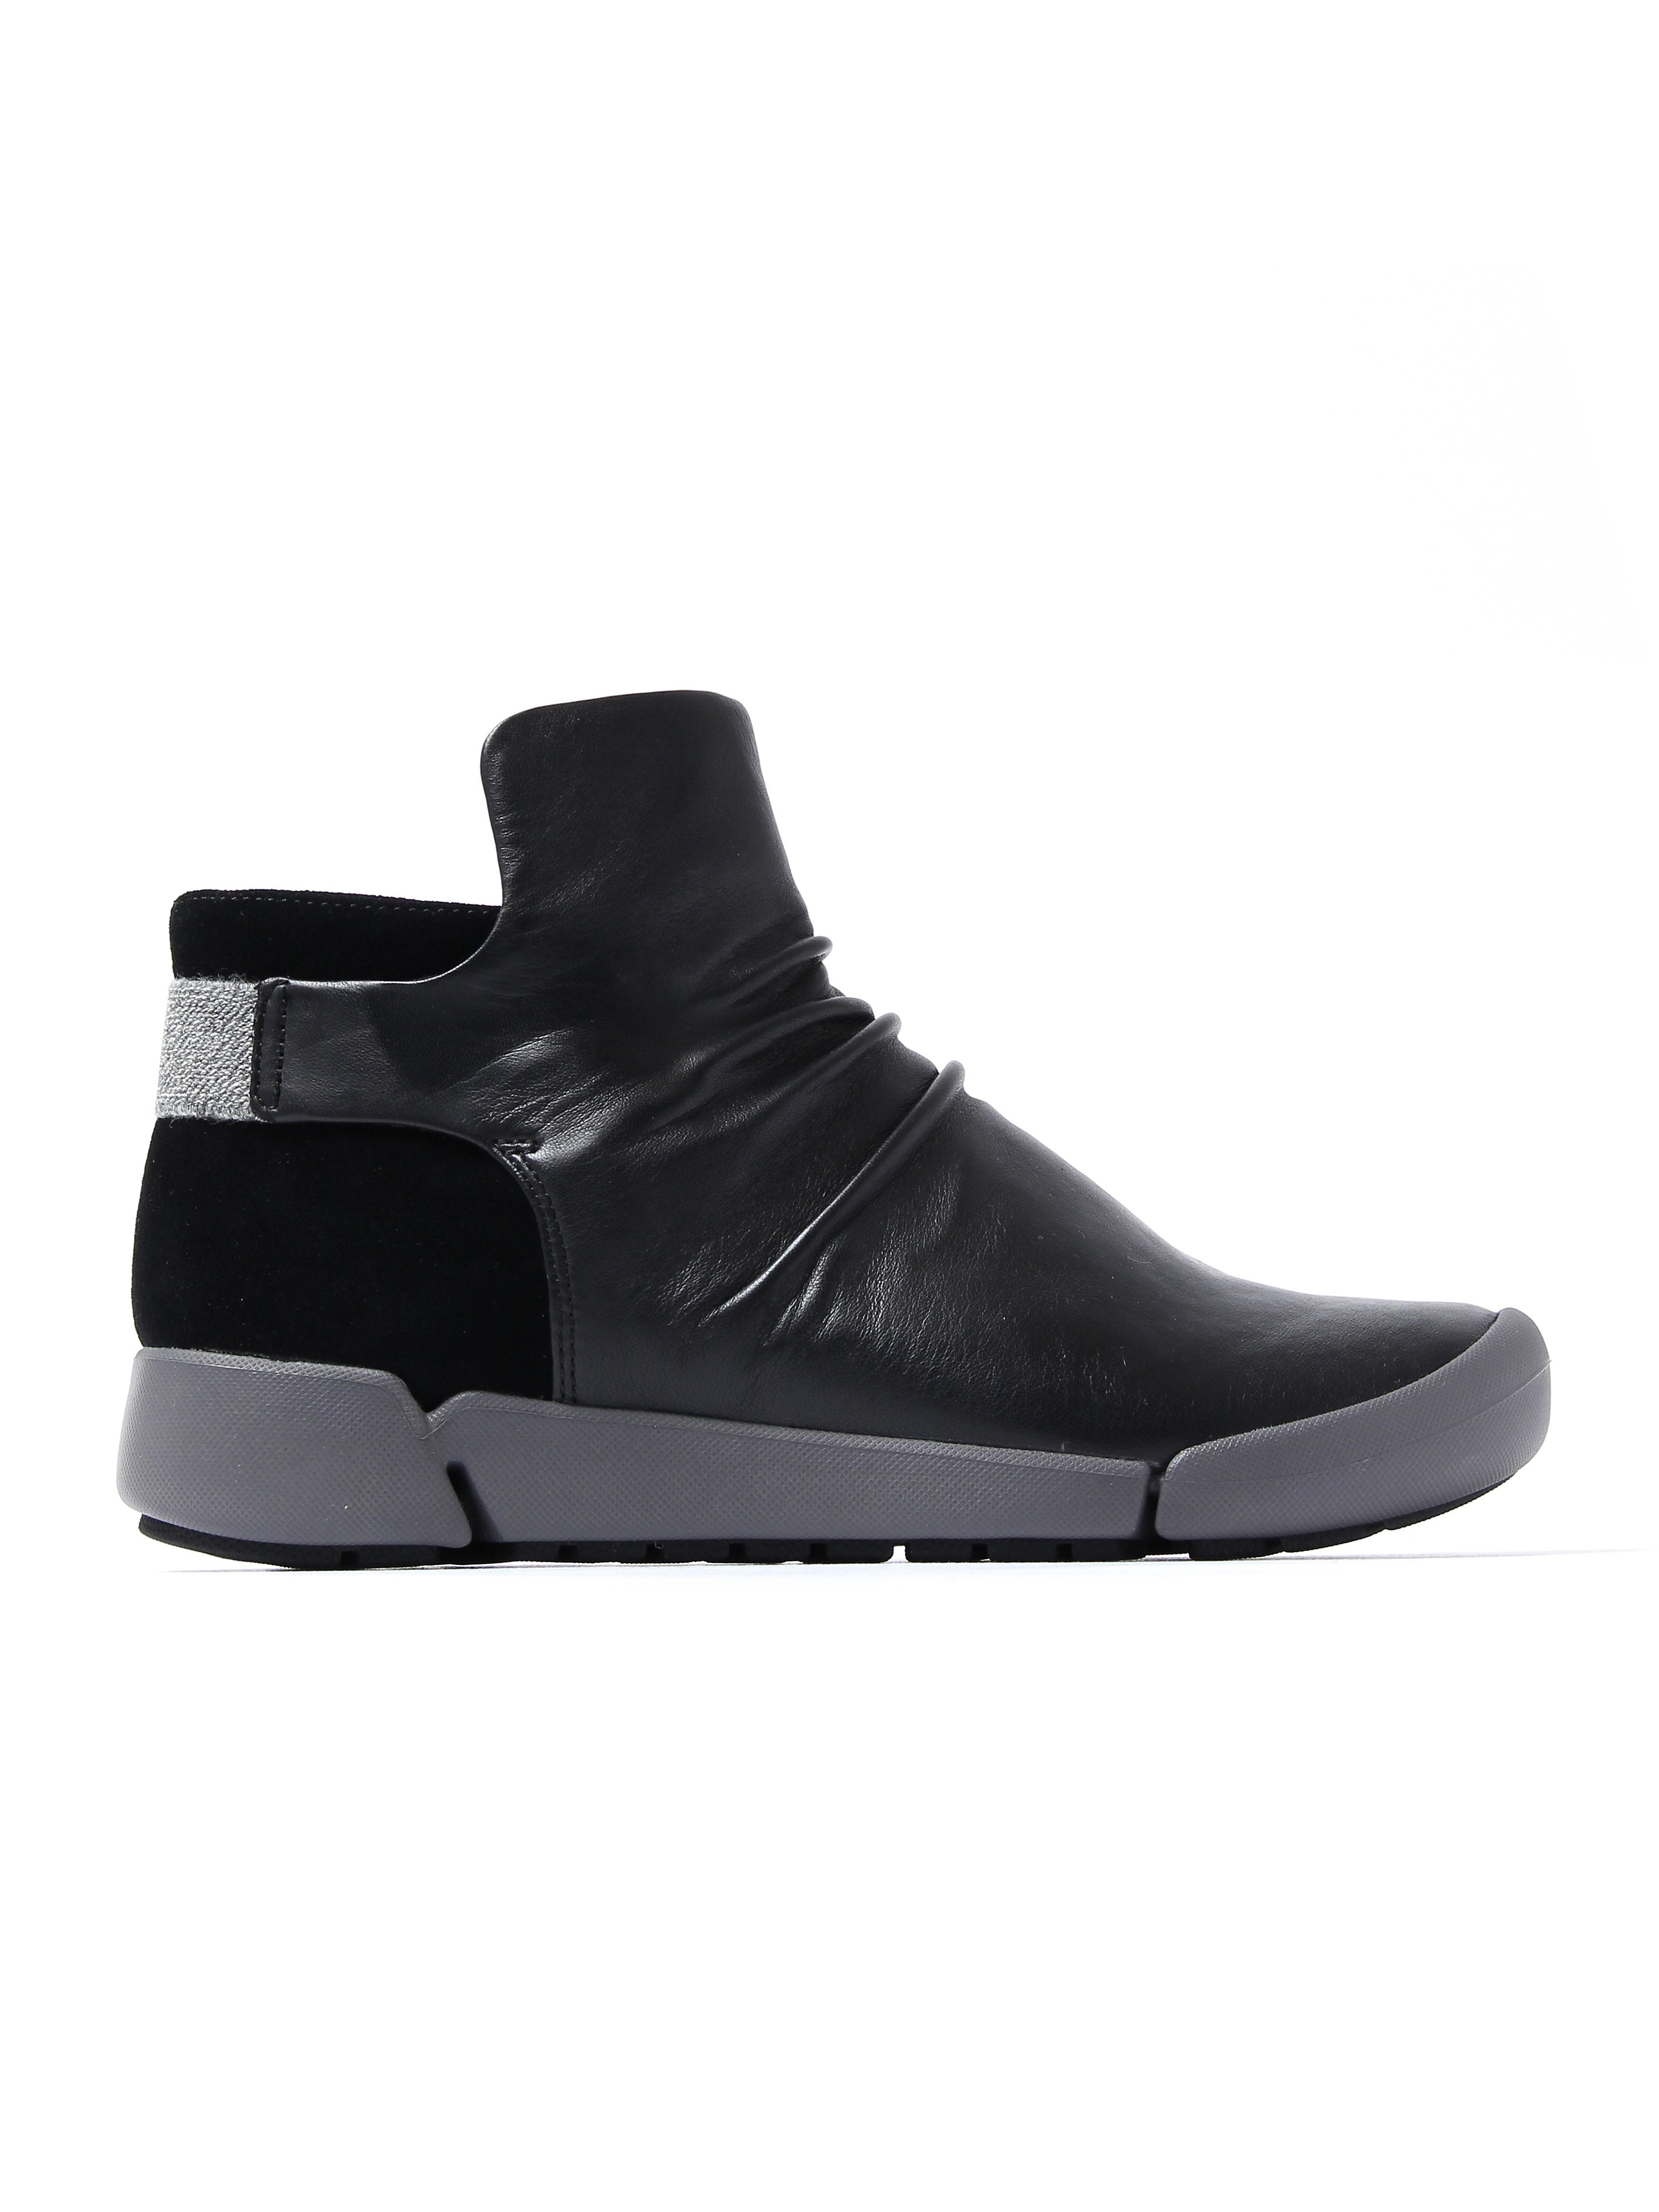 Clarks Women's Tri Pearl Ankle Boots - Black Leather